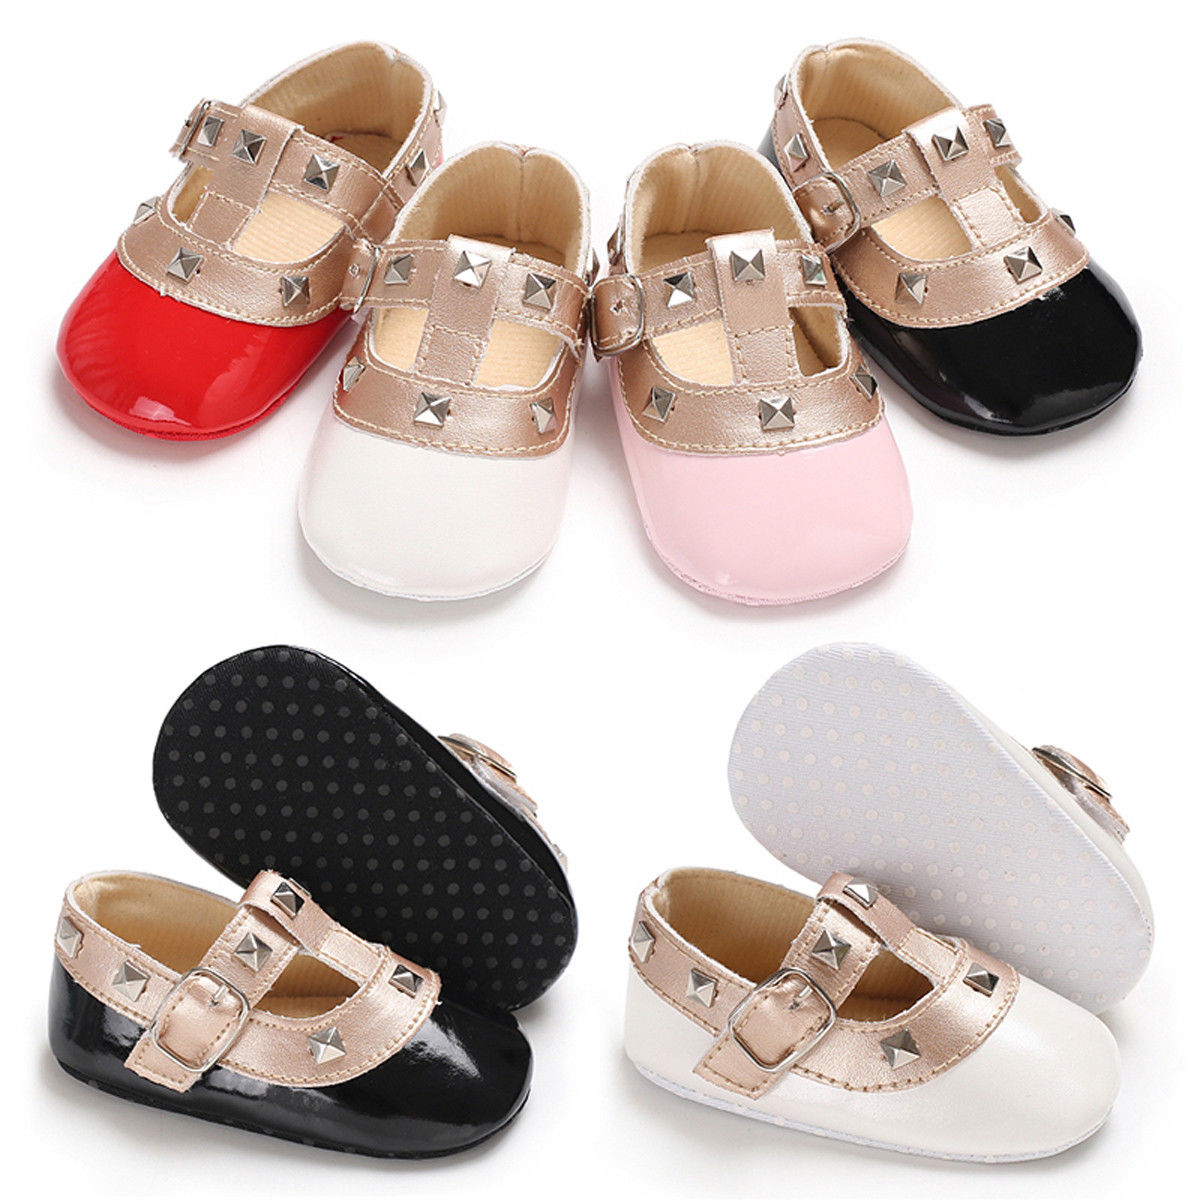 Newborn Toddler Baby Girls Bow Princess Leather Shoes Soft Sole Crib Solid Buckle Straps Flat With Heel Shoes 4 Colors